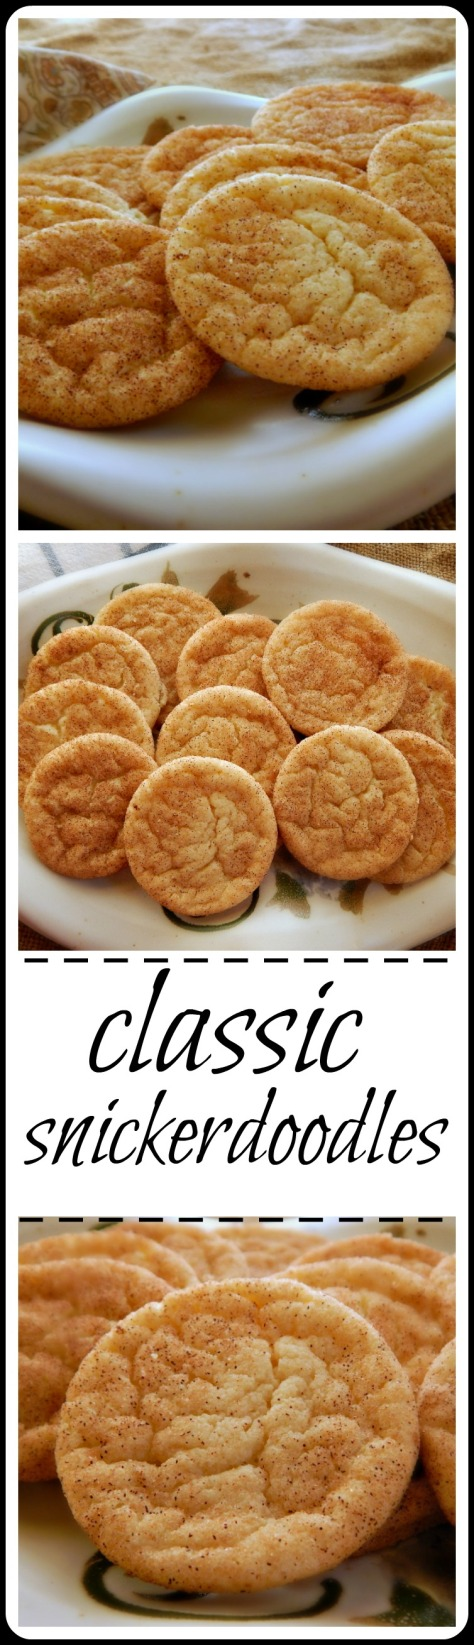 Classic Snickerdoodles: I just love the slight crispness of the outer edges and the chewiness of the center. One of my favorite cookies!